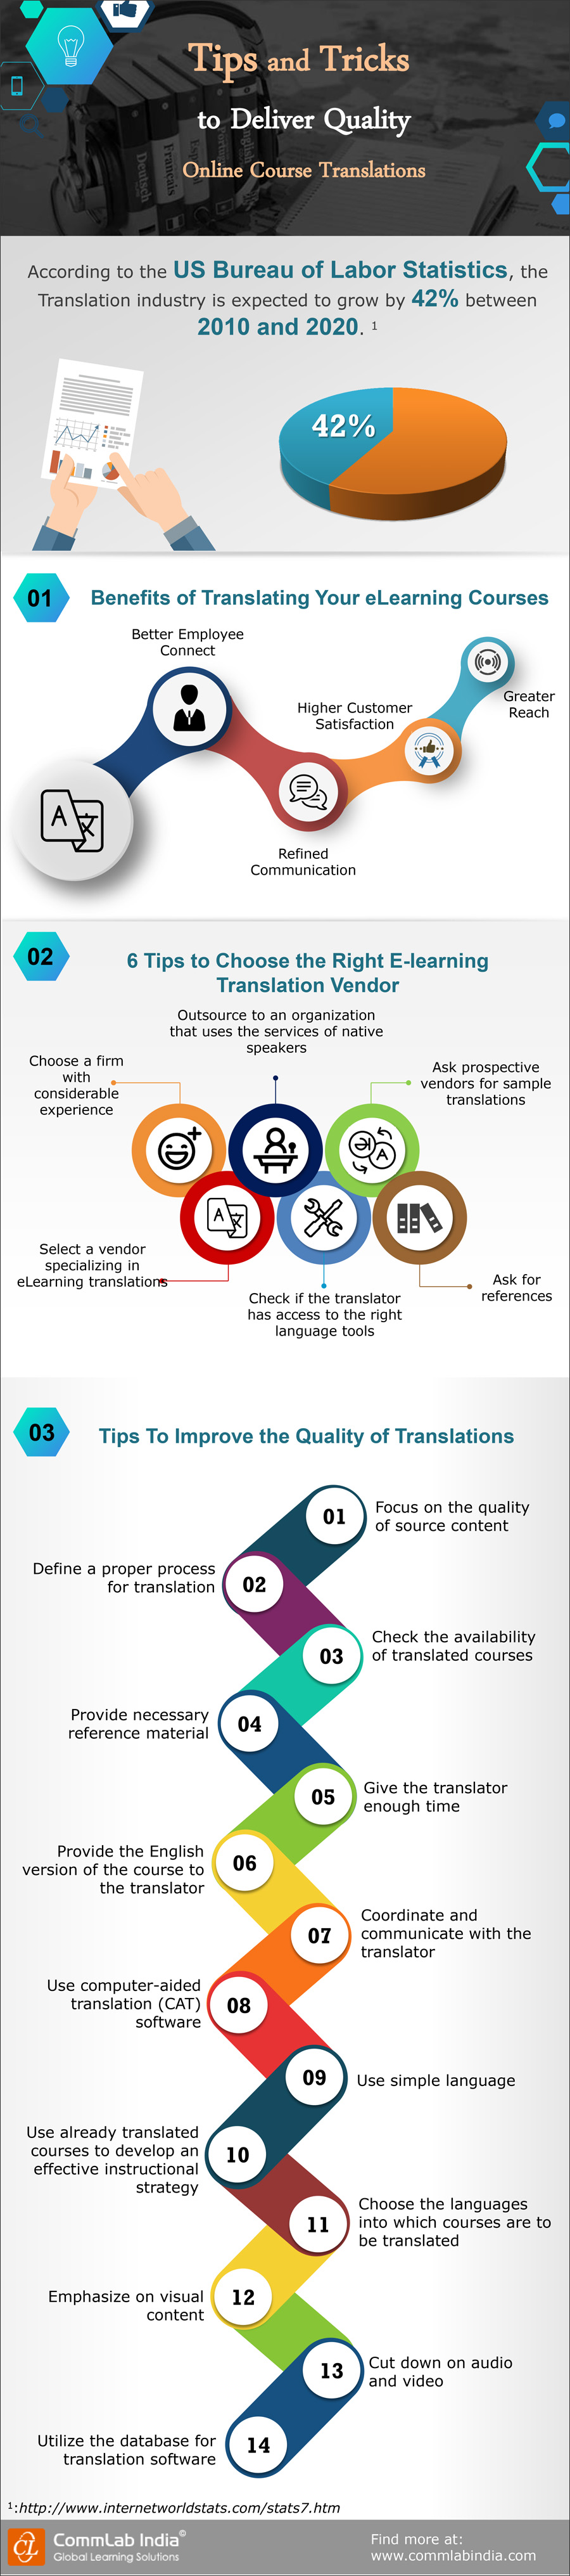 tips-for-high-quality-online-course-translations